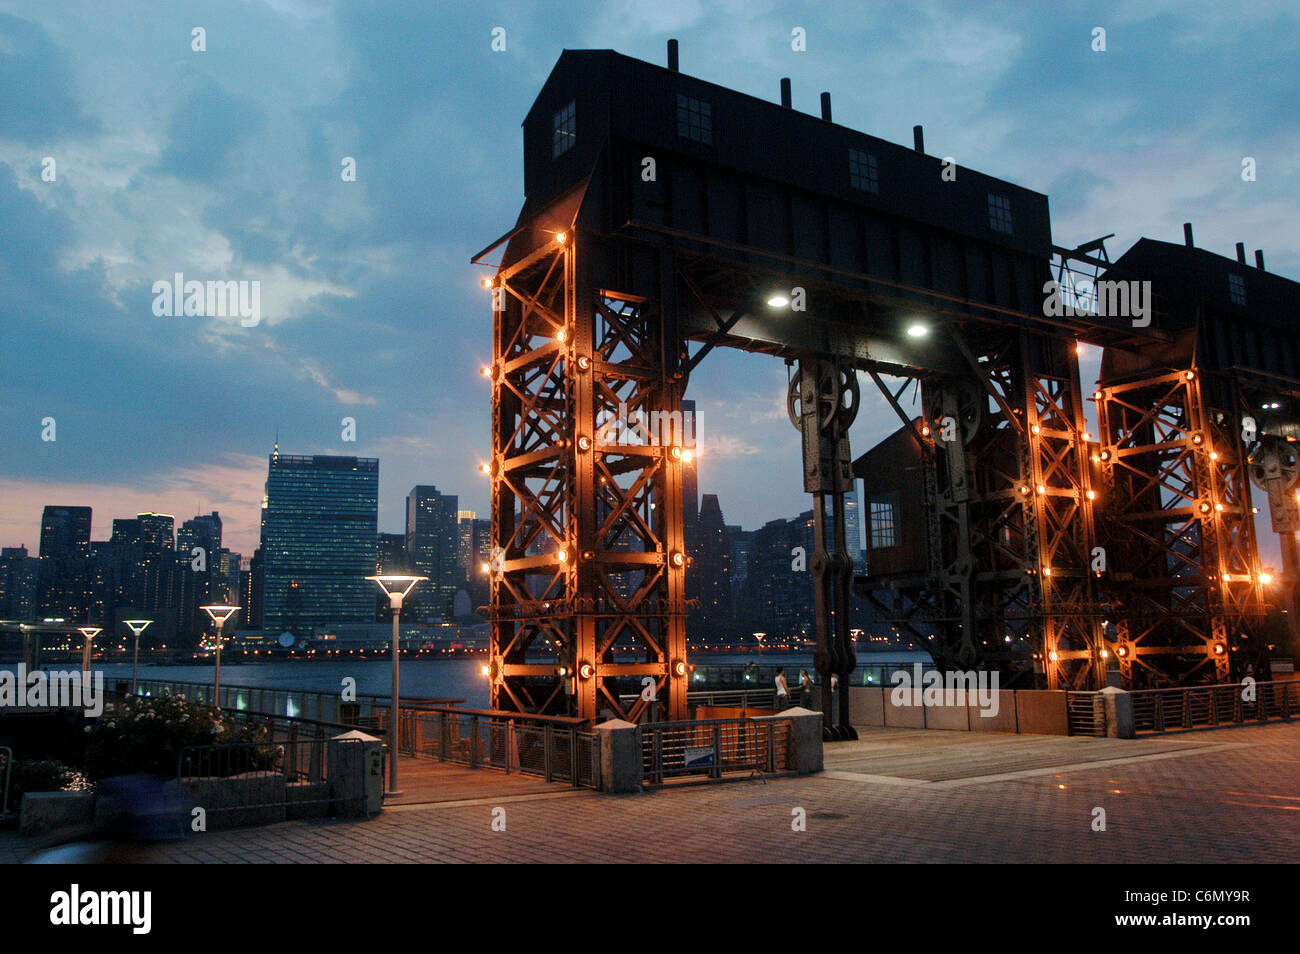 Rail bridge at Gantry State Park, Queens West, New York City - Stock Image